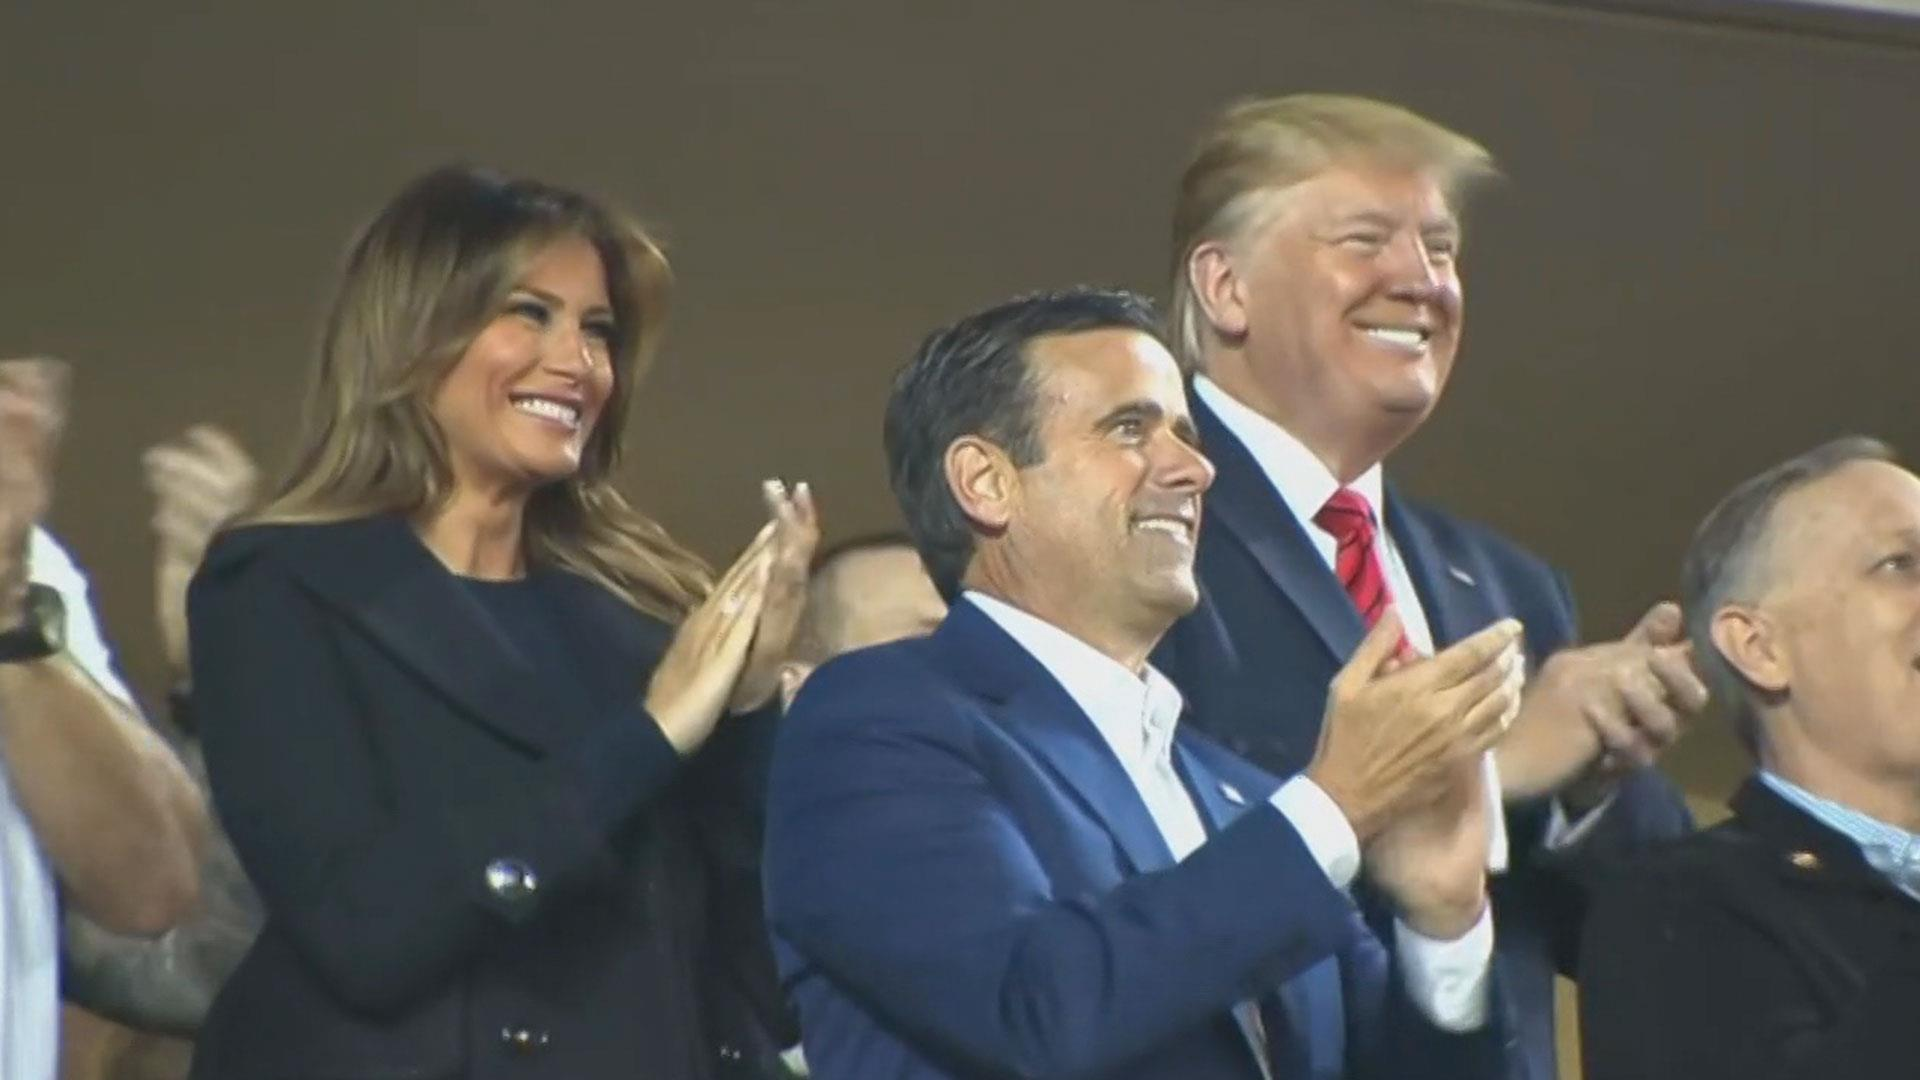 Trump showered with boos, chants of 'lock him up' at World Series game